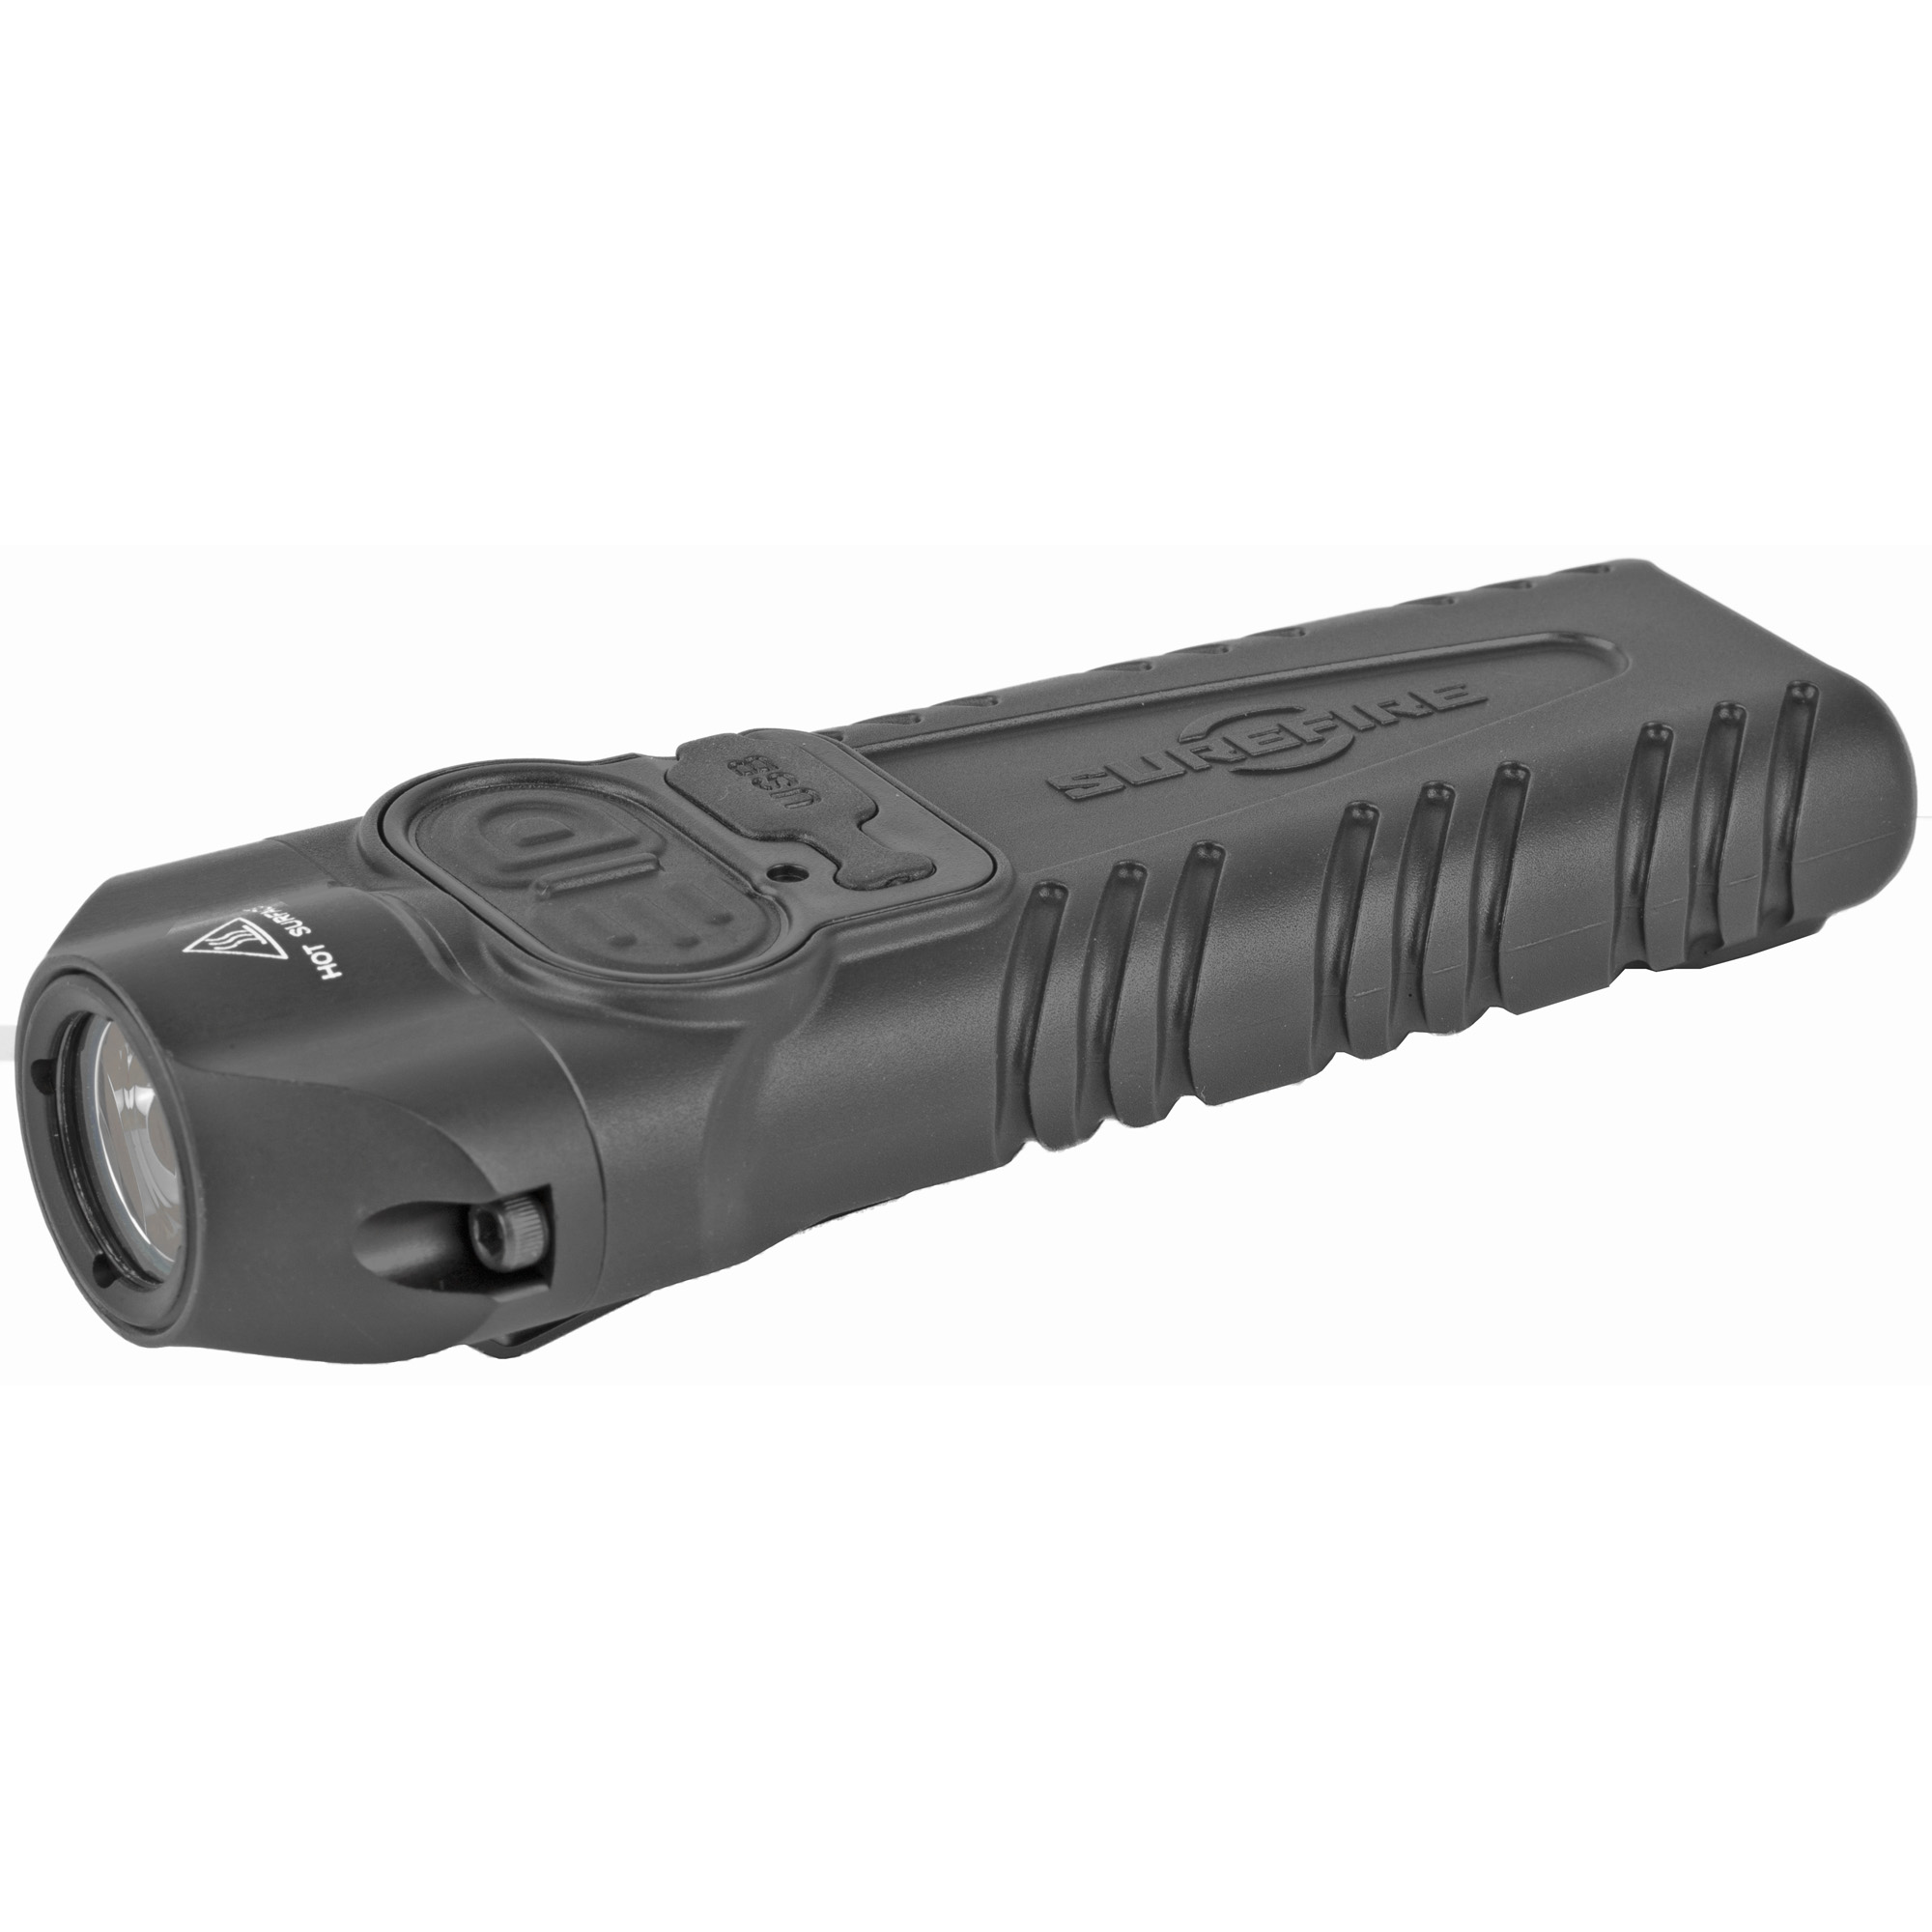 SureFire Stiletto Pro 1000 Lumen LED Flashlight Body and Tail Switch Rechargeable Aluminum Black